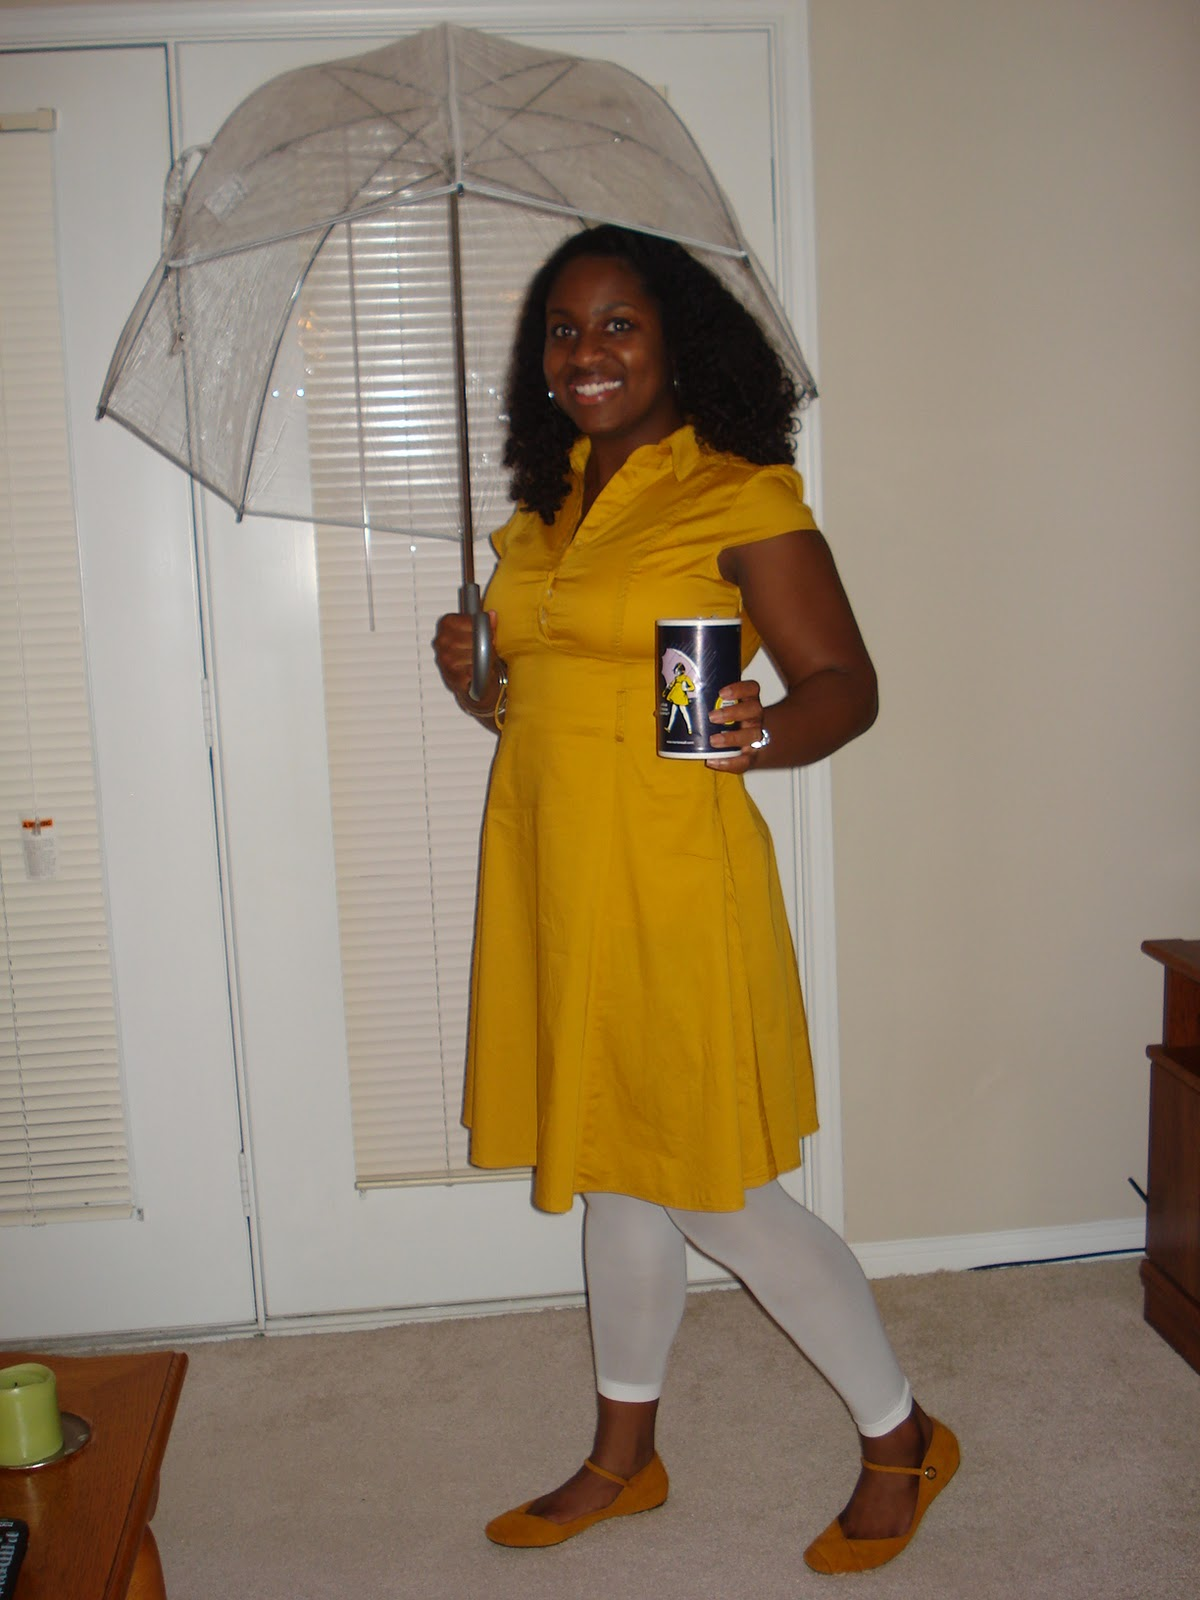 So today I put on a yellow dress yellow shoes and white tights and grabbed an umbrella and transformed into the Mortonu0027s Salt Girl. & Playing Dress Up | Soul In Stereo